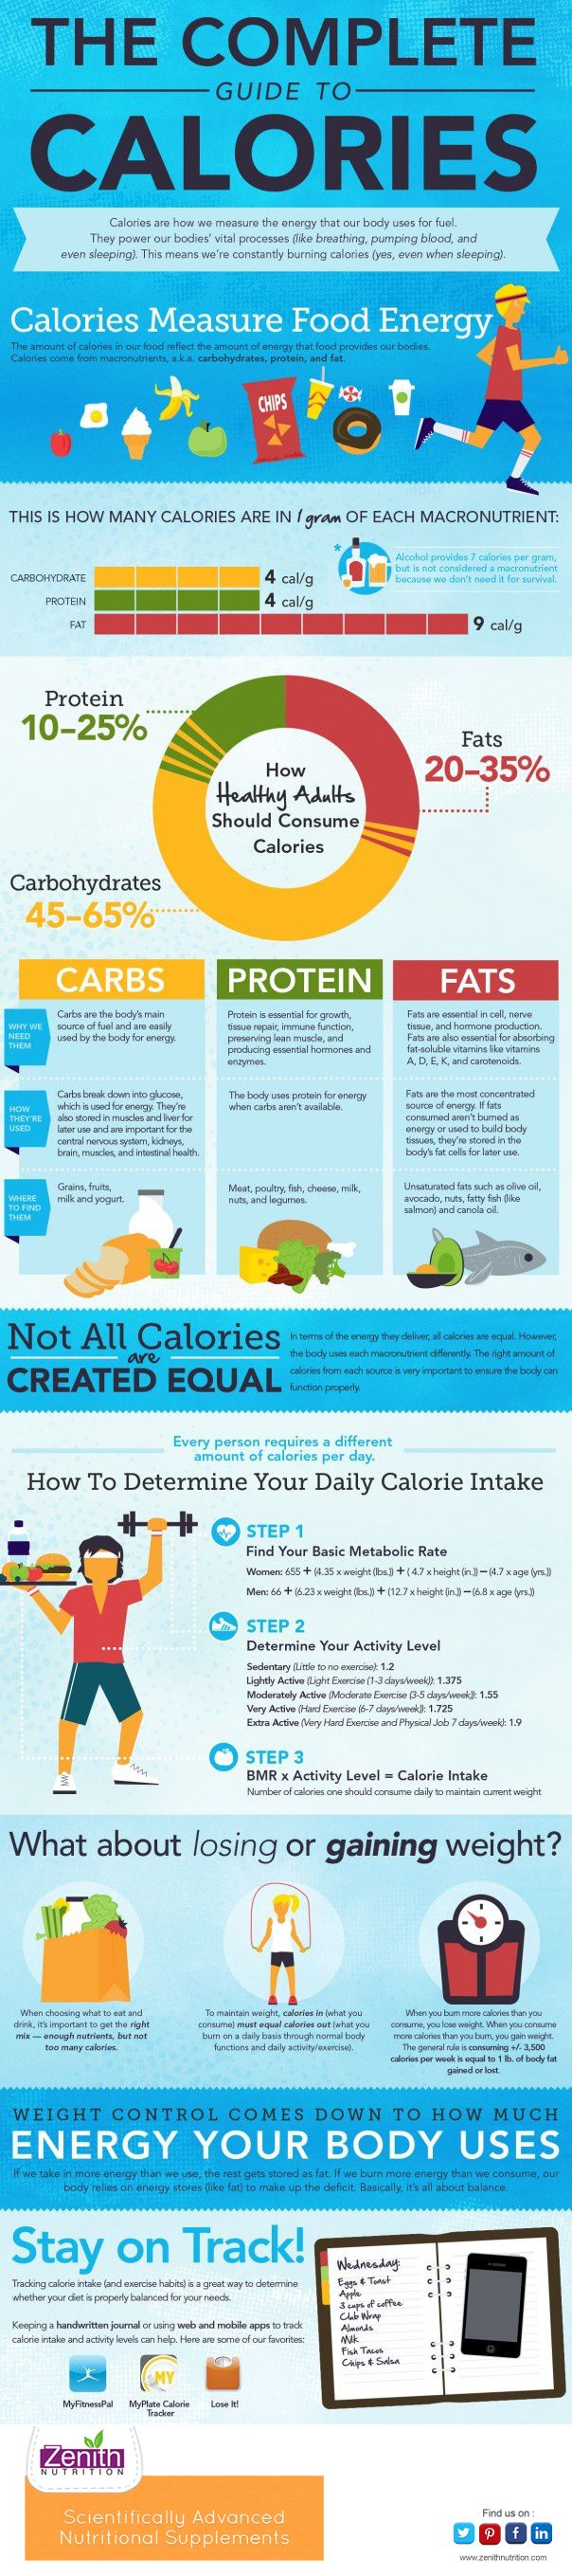 The Complete Guide to Calories. Calories measure food energy. Carbs, Protein and Fats. Not all calories are created equal. How to determine your daily calorie intake. What about losing and gaining weight. Weight control comes down to how much energy your body uses - Stay on Track. Best supplements from Zenith Nutrition. Health Supplements. Nutritional Supplements.  Health Infographics